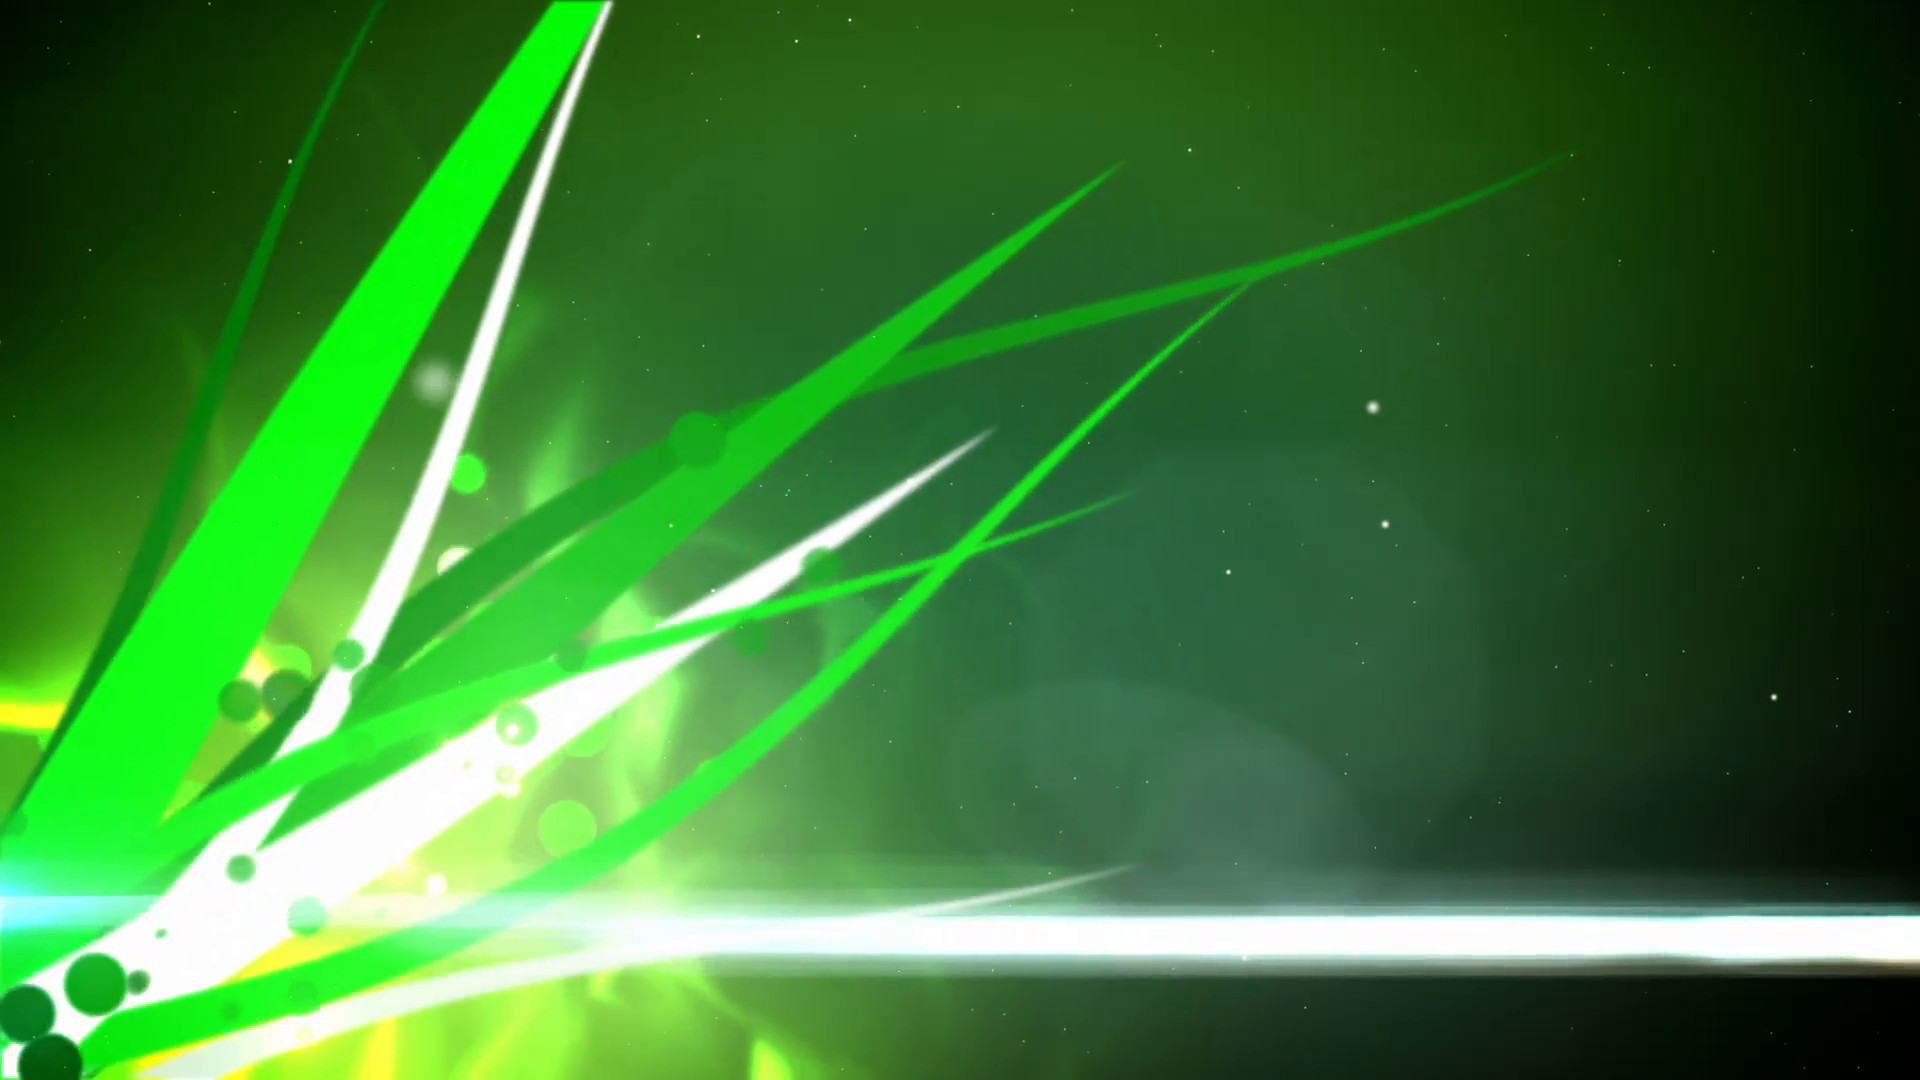 1920x1080 Bright Glowing Grass On Green Background Loop Motion Background -  VideoBlocks